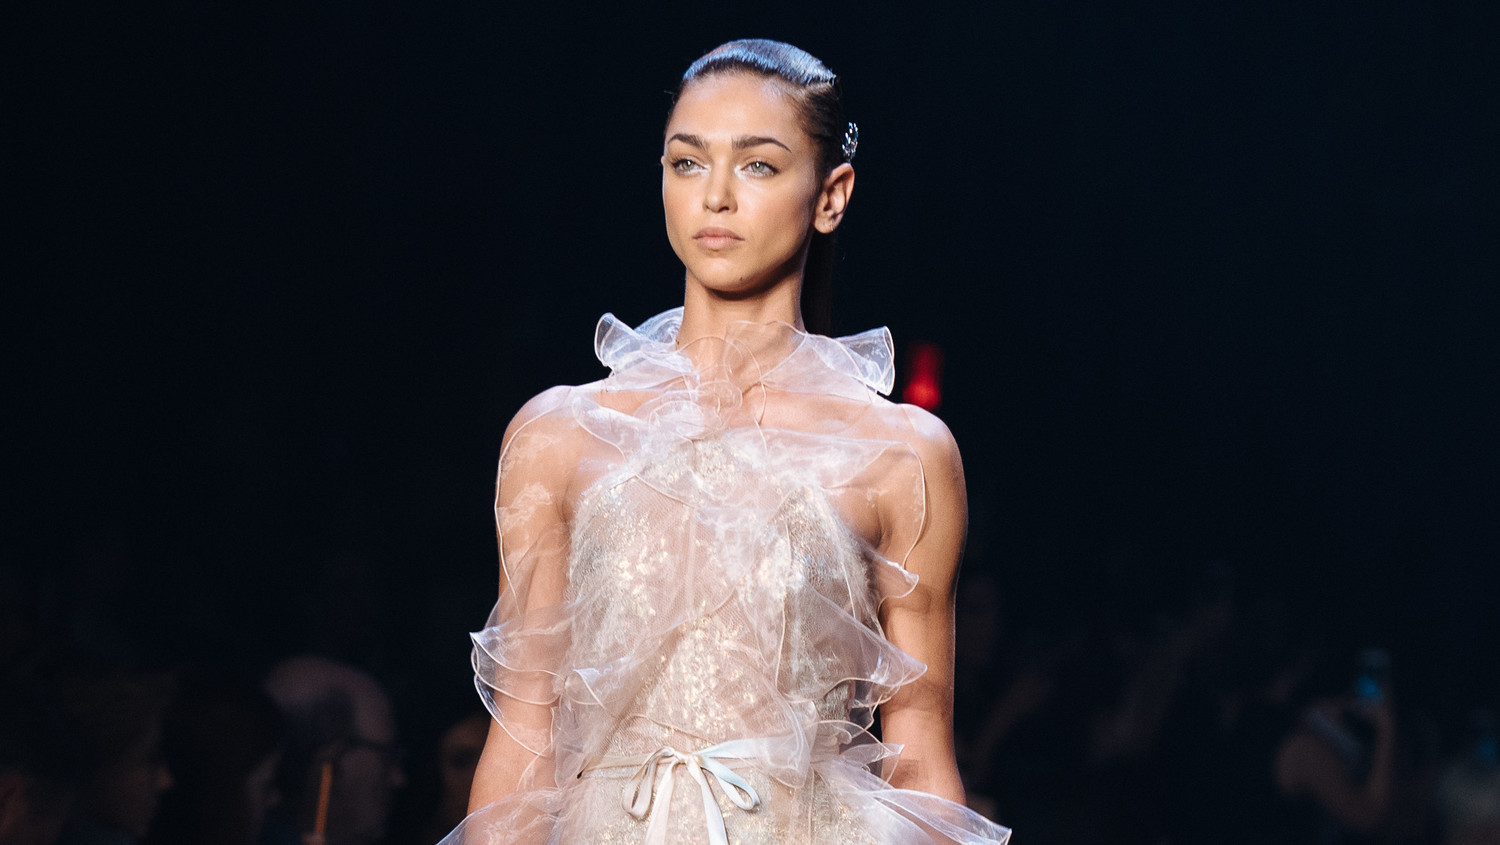 Vows Wedding Dresses Nyc : New york fashion week looks that could double as wedding dresses